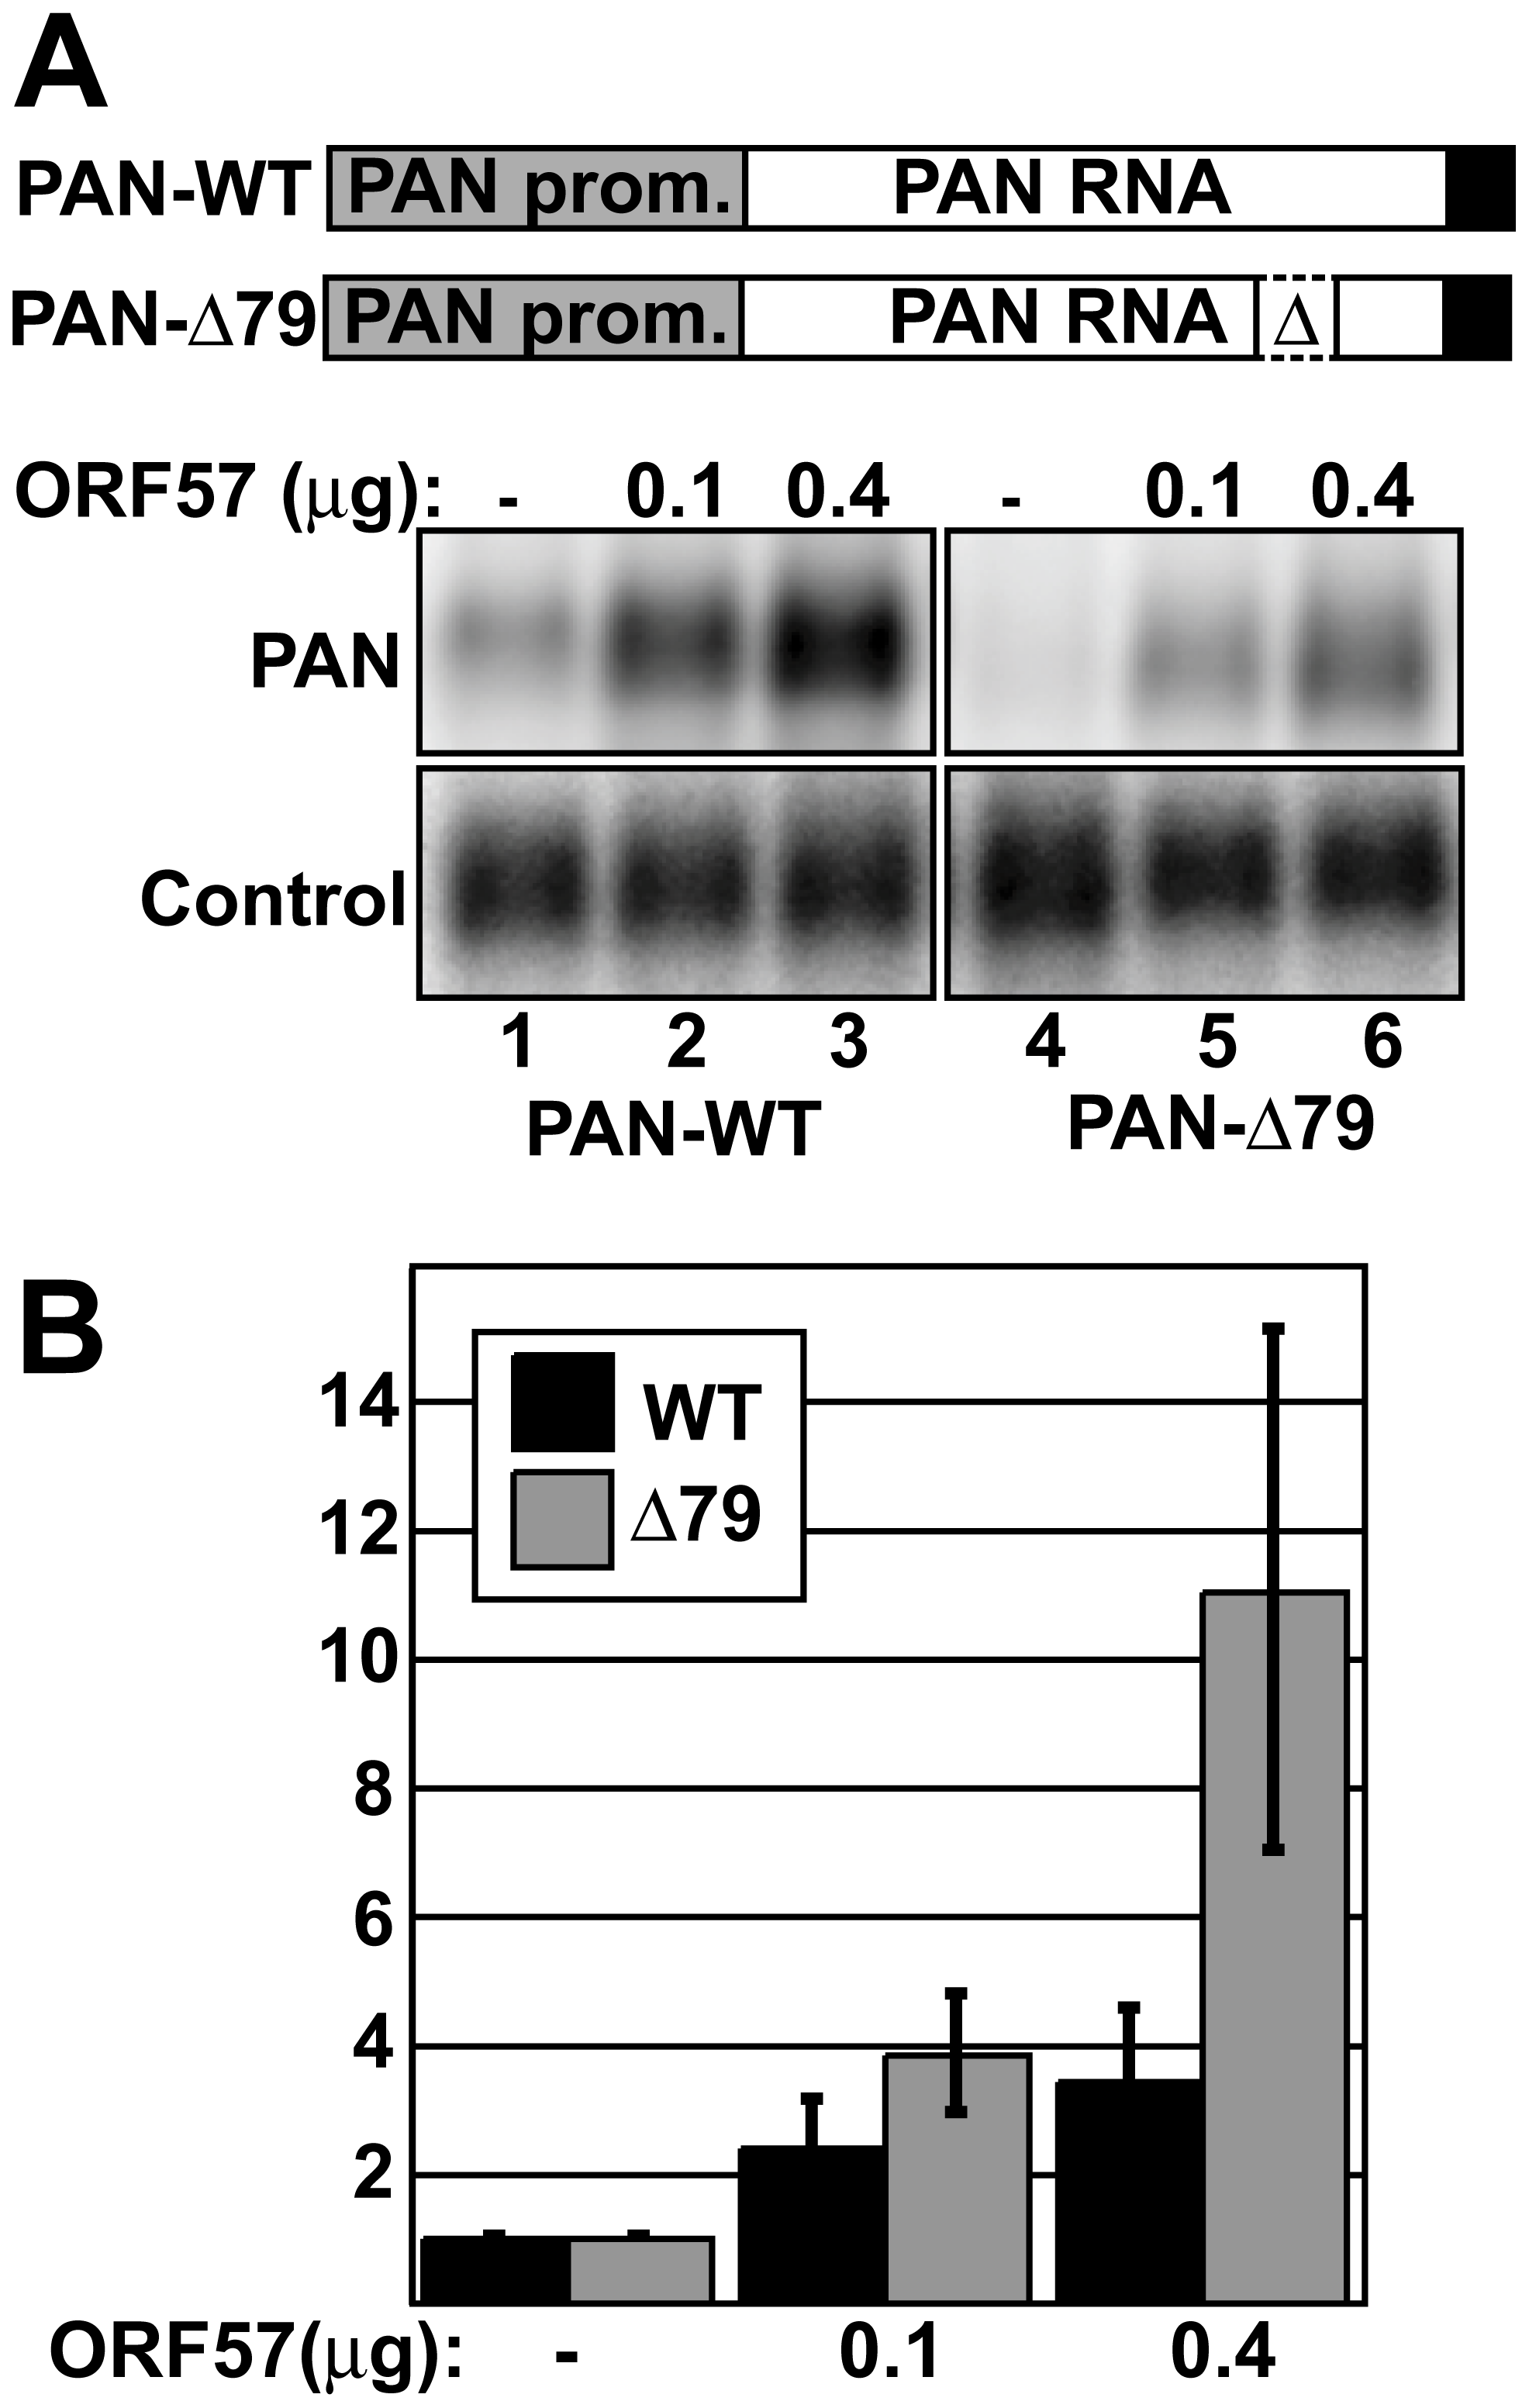 ORF57 preferentially enhances the levels of an unstable nuclear RNA.